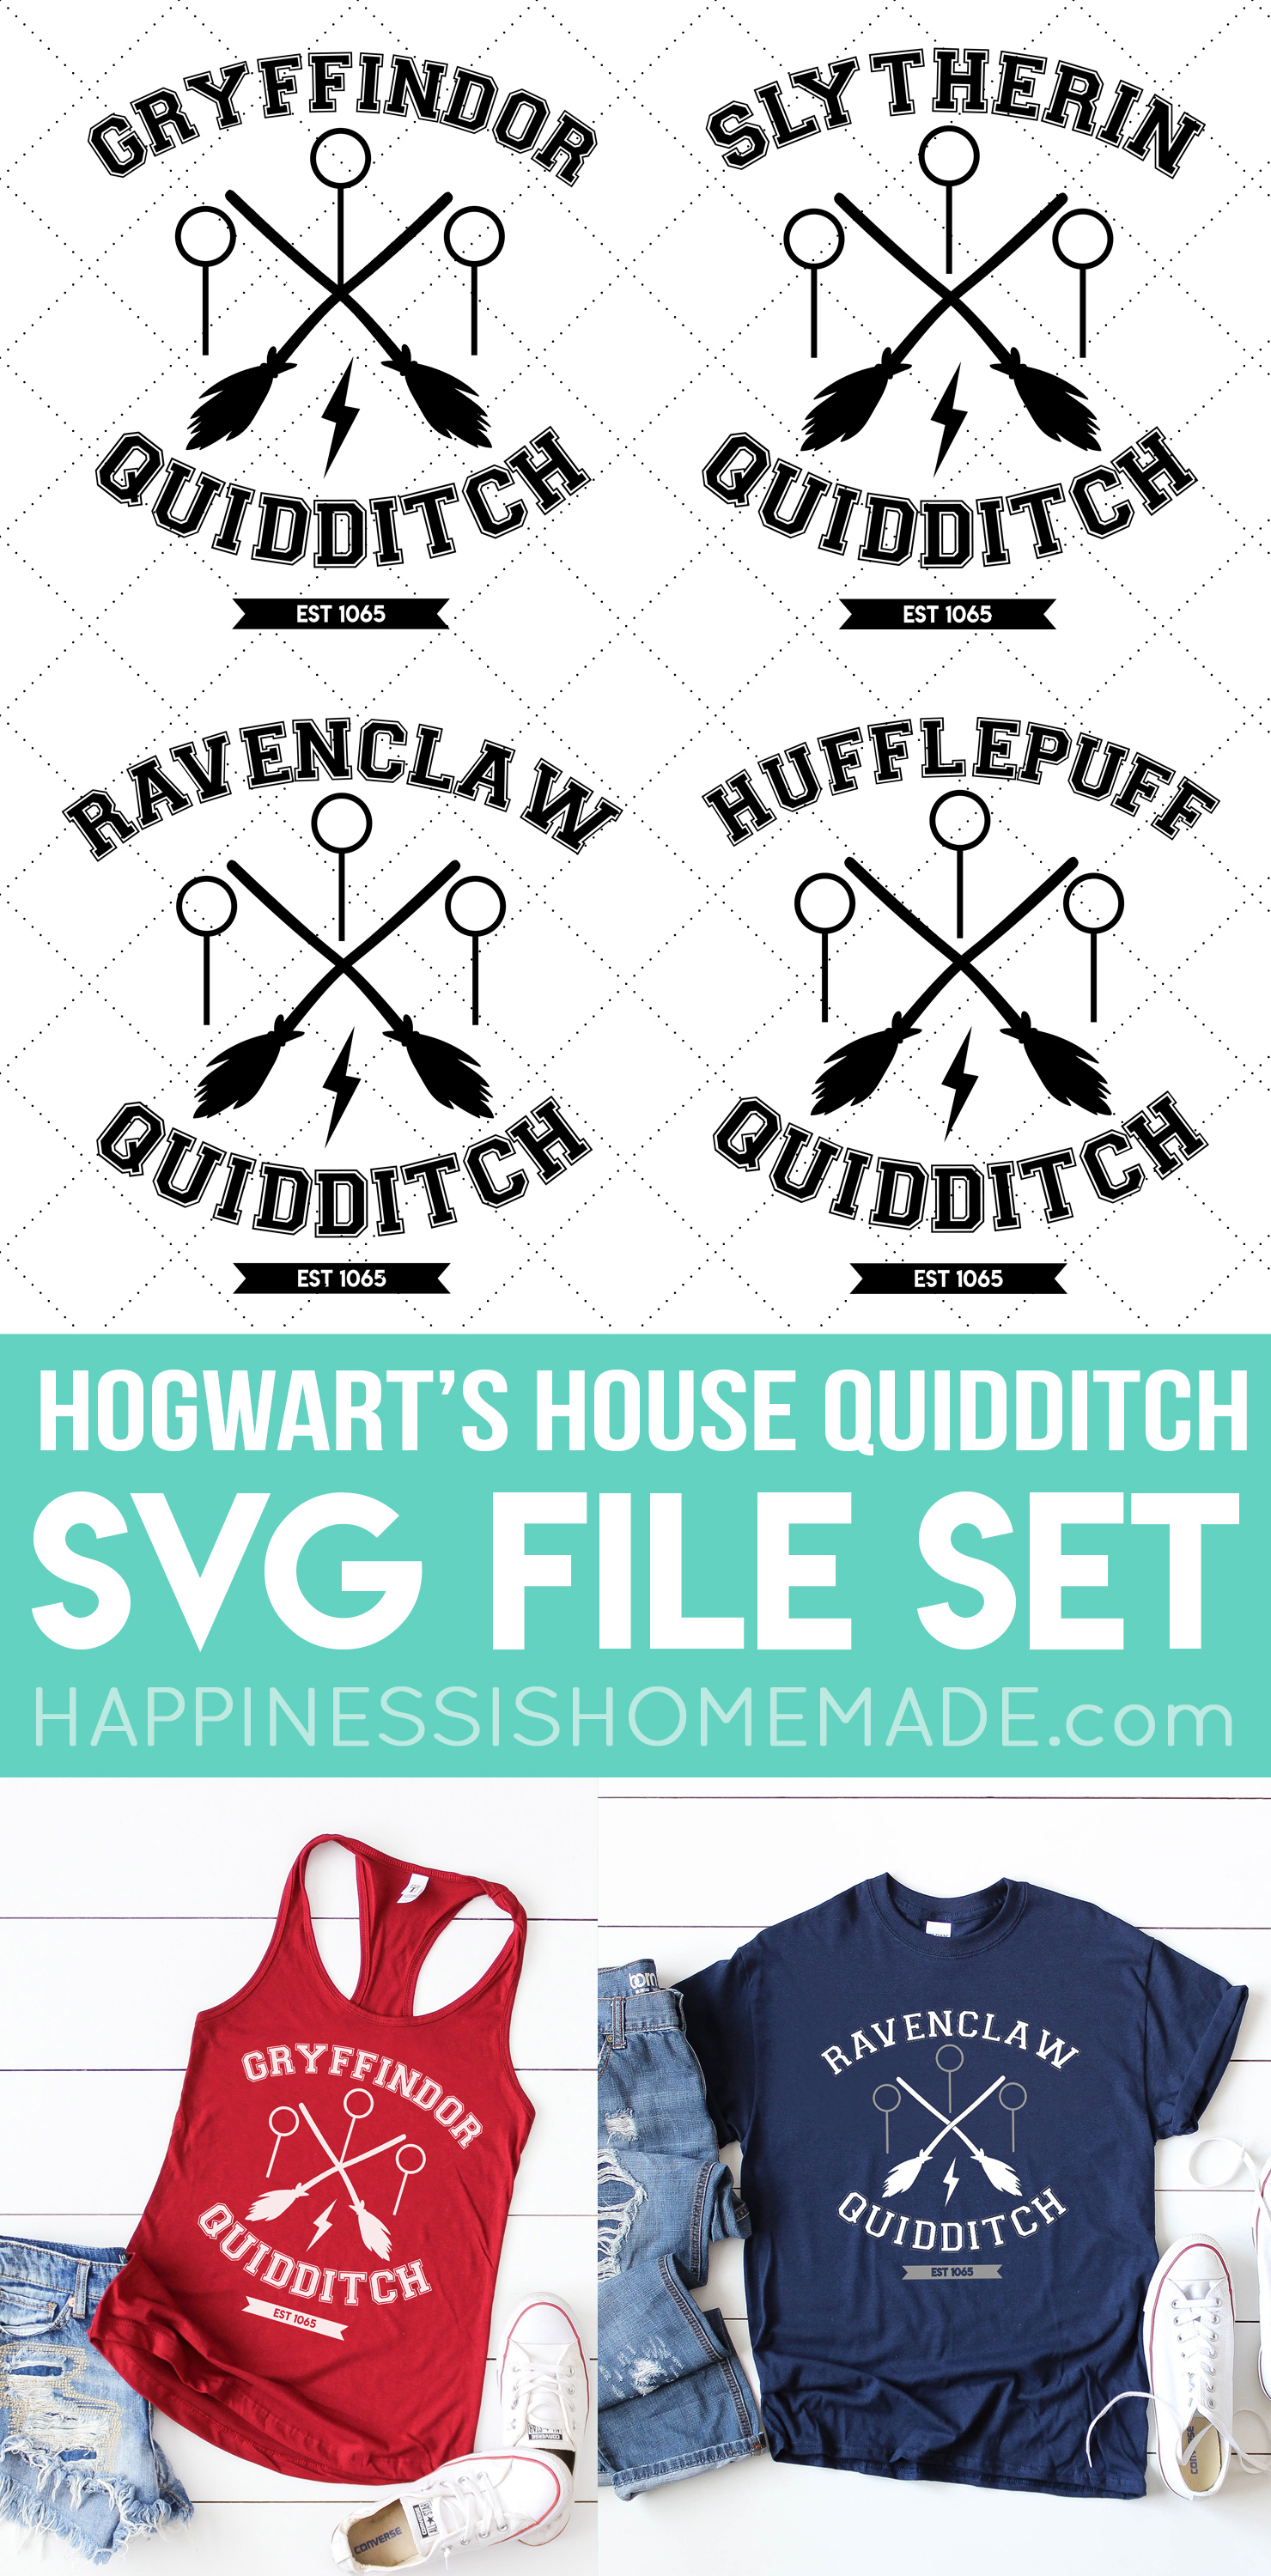 Ravenclaw Quidditch Shirt Free Svg File Happiness Is